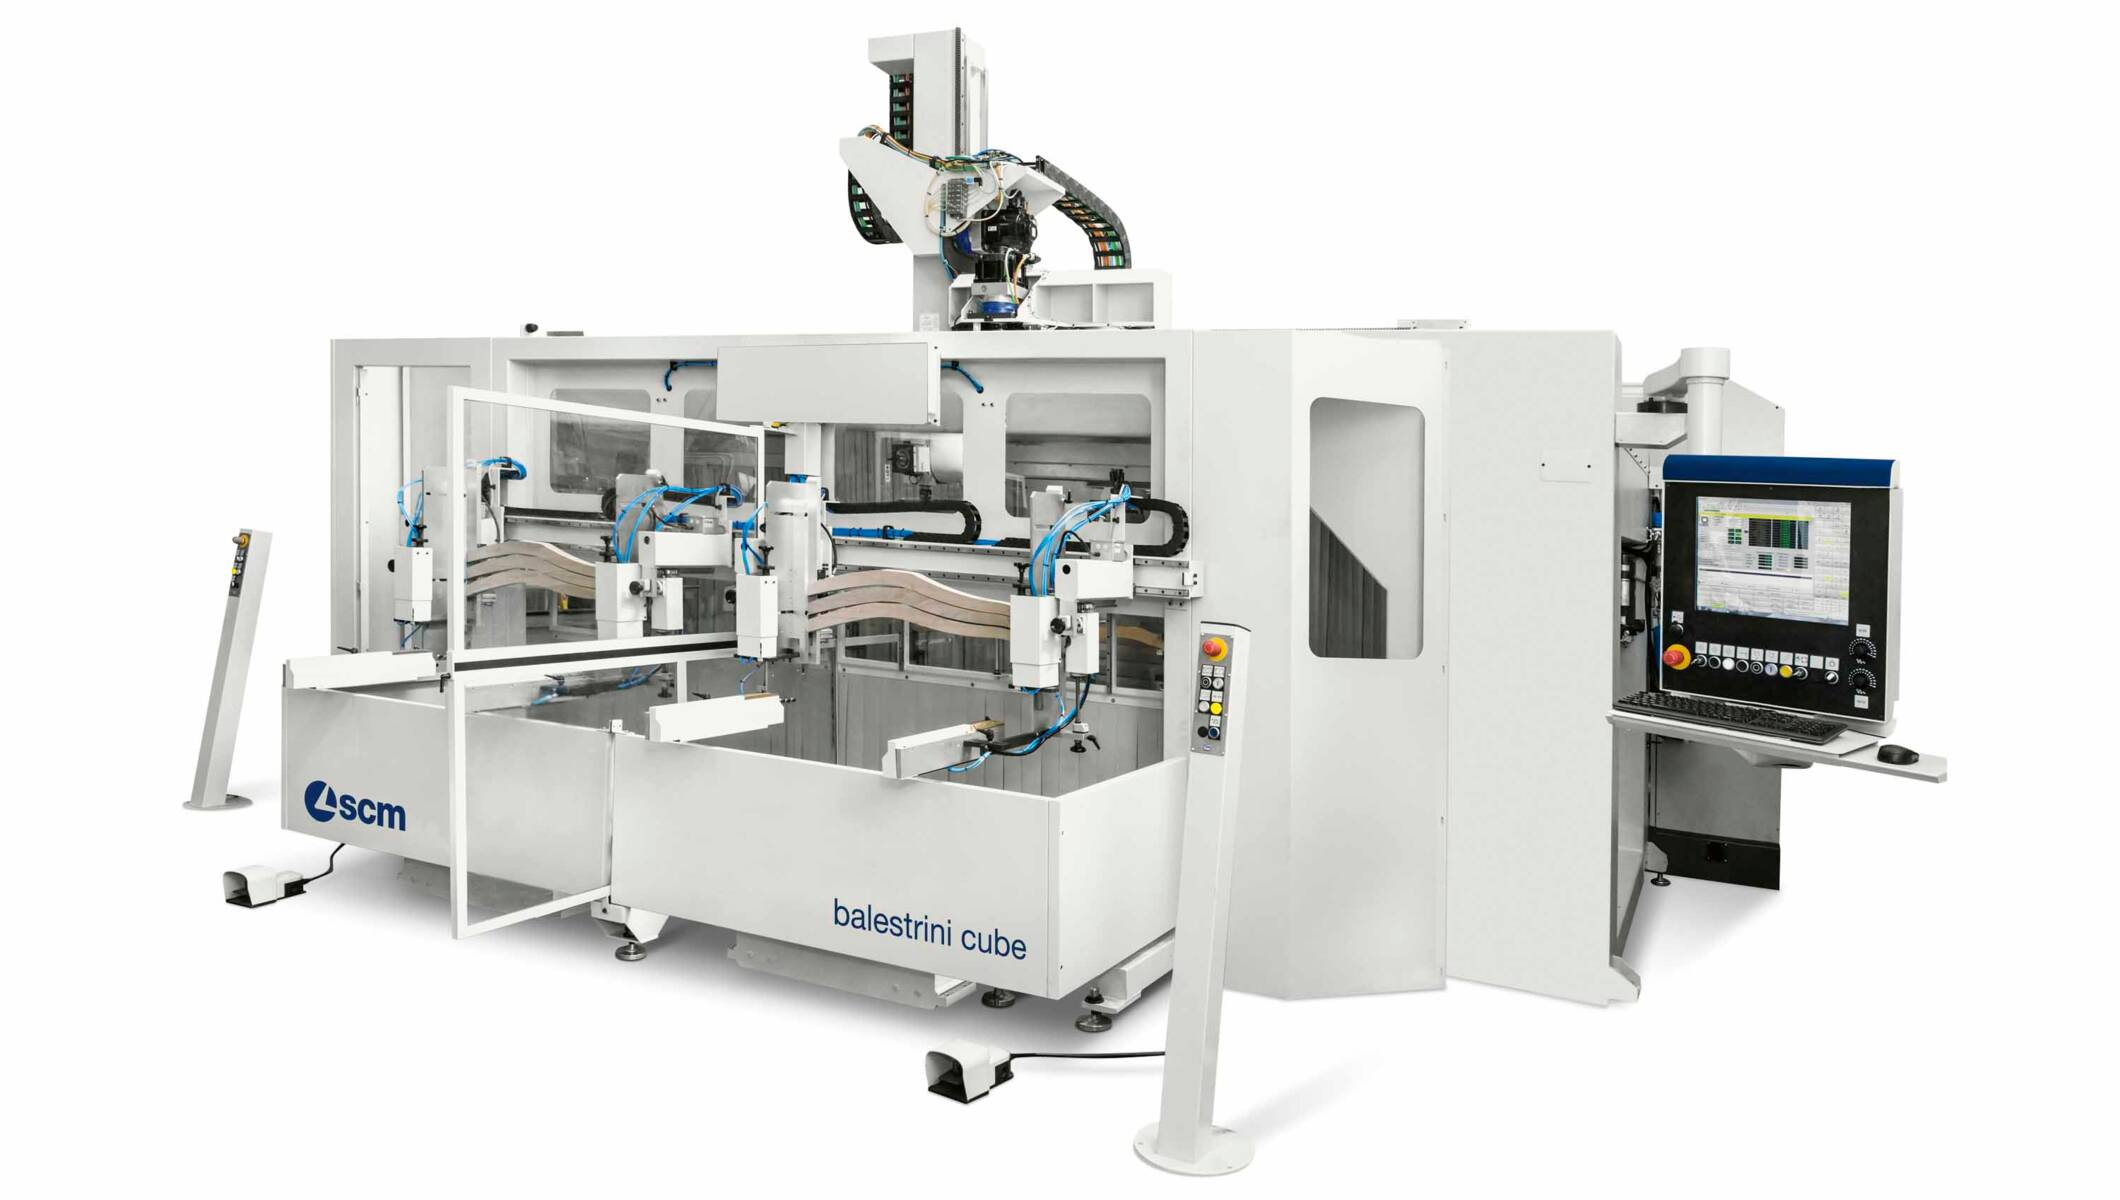 CNC Machining Centres - CNC Machining Centres for solid wood routing and drilling - balestrini cube